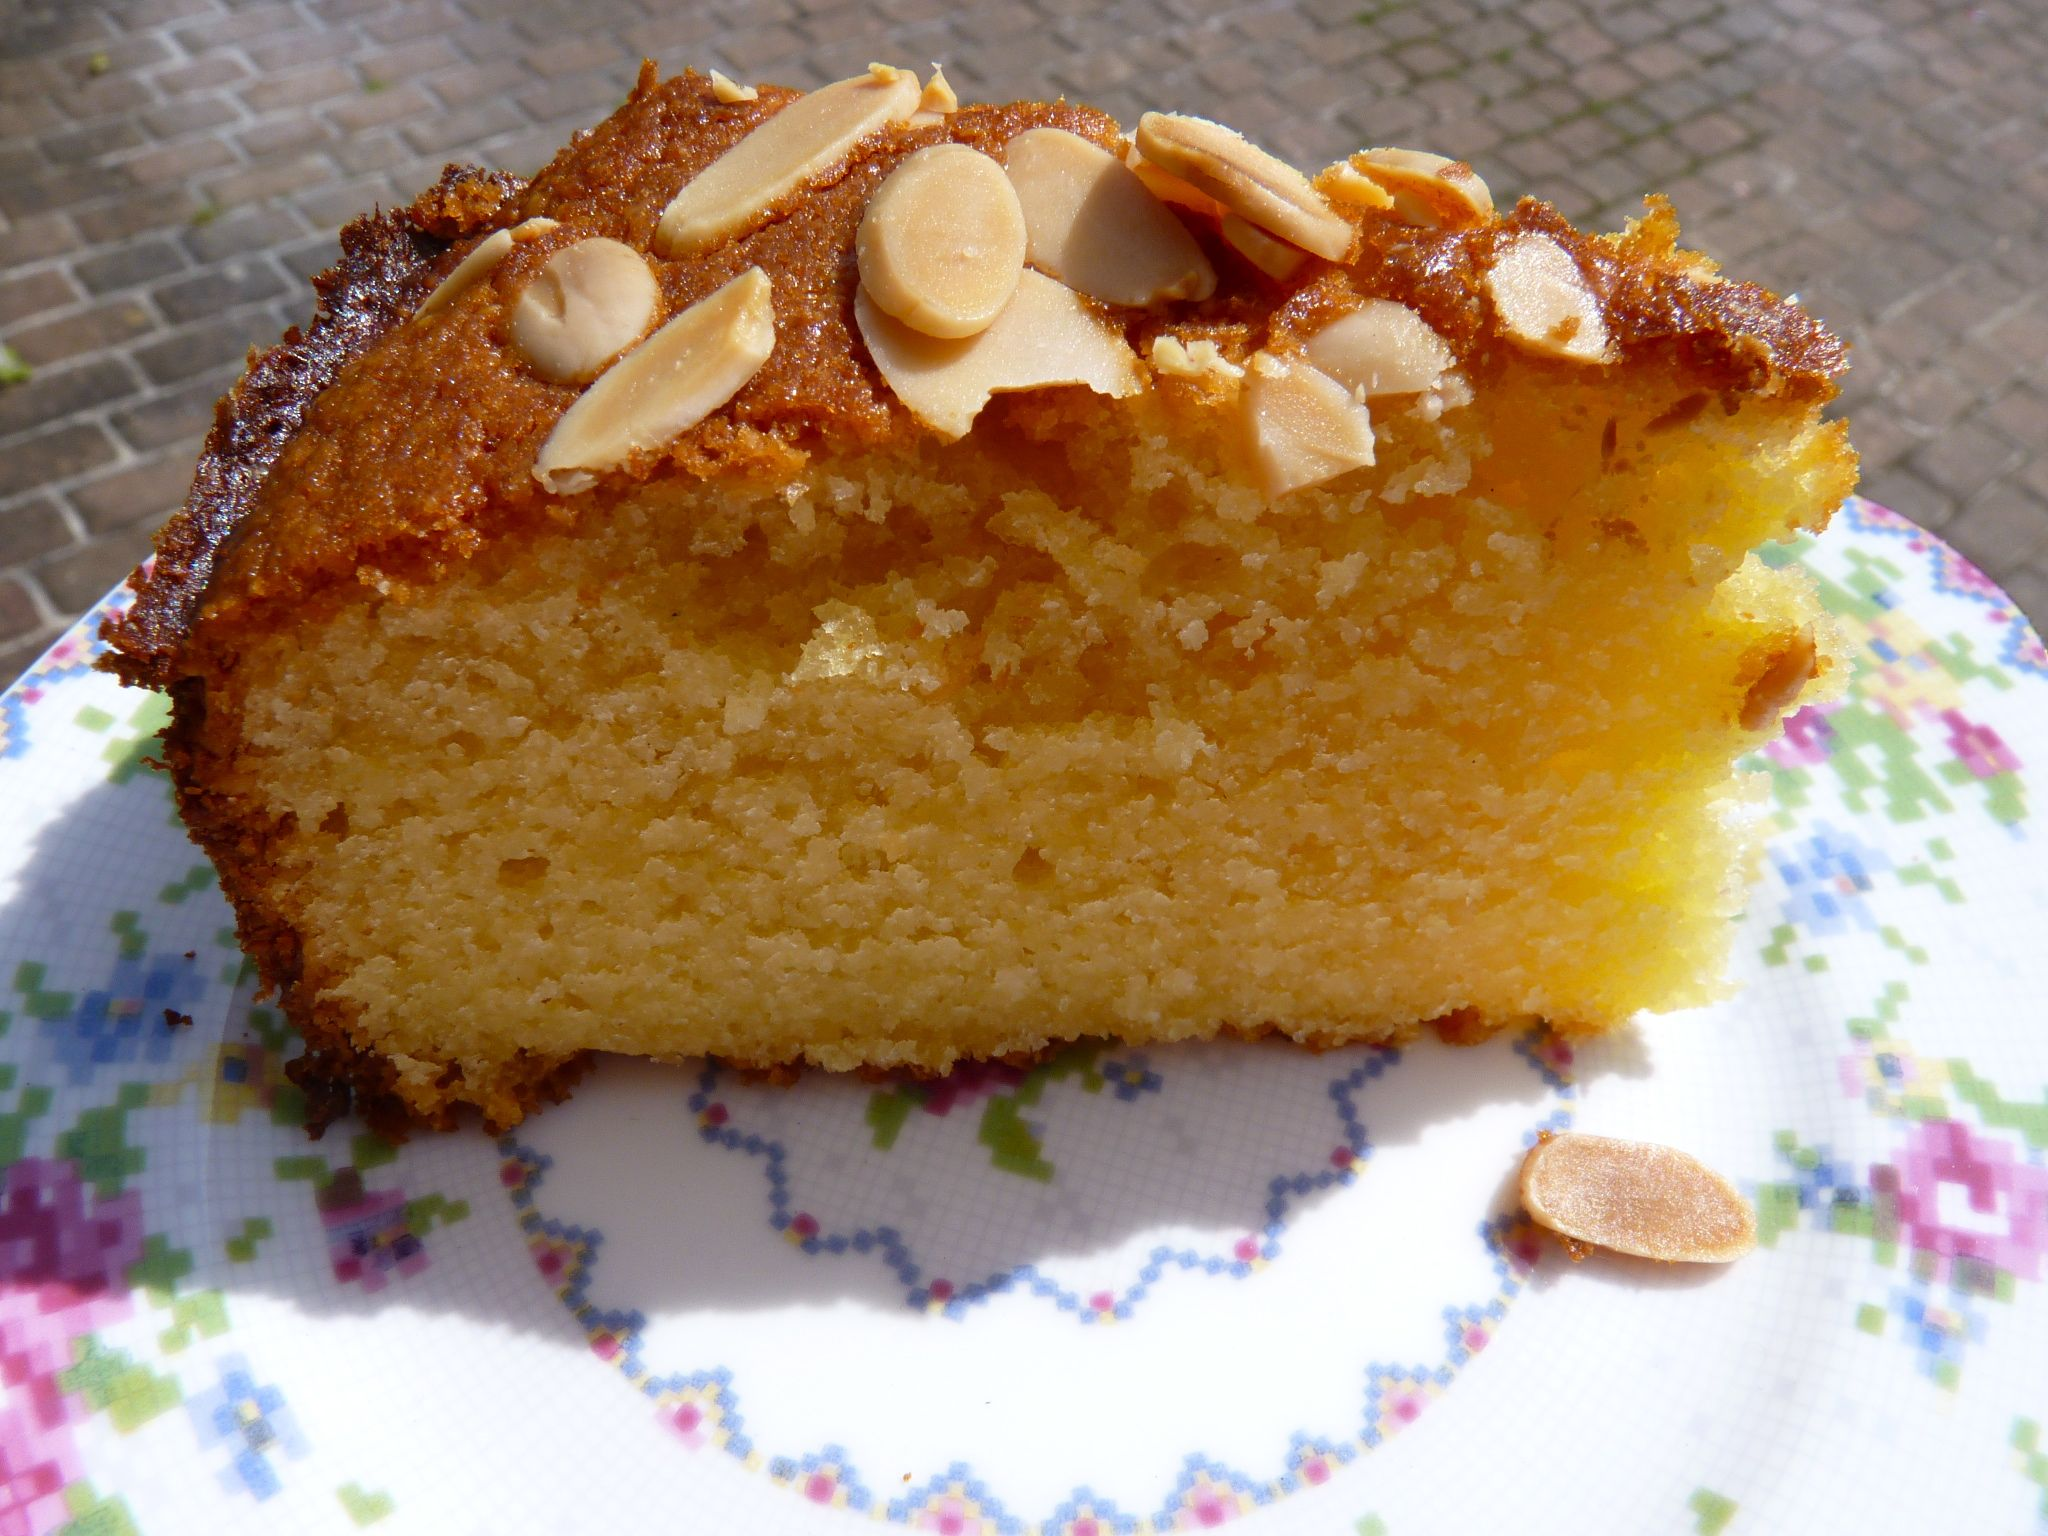 Cake Recipe Using Almond Flour